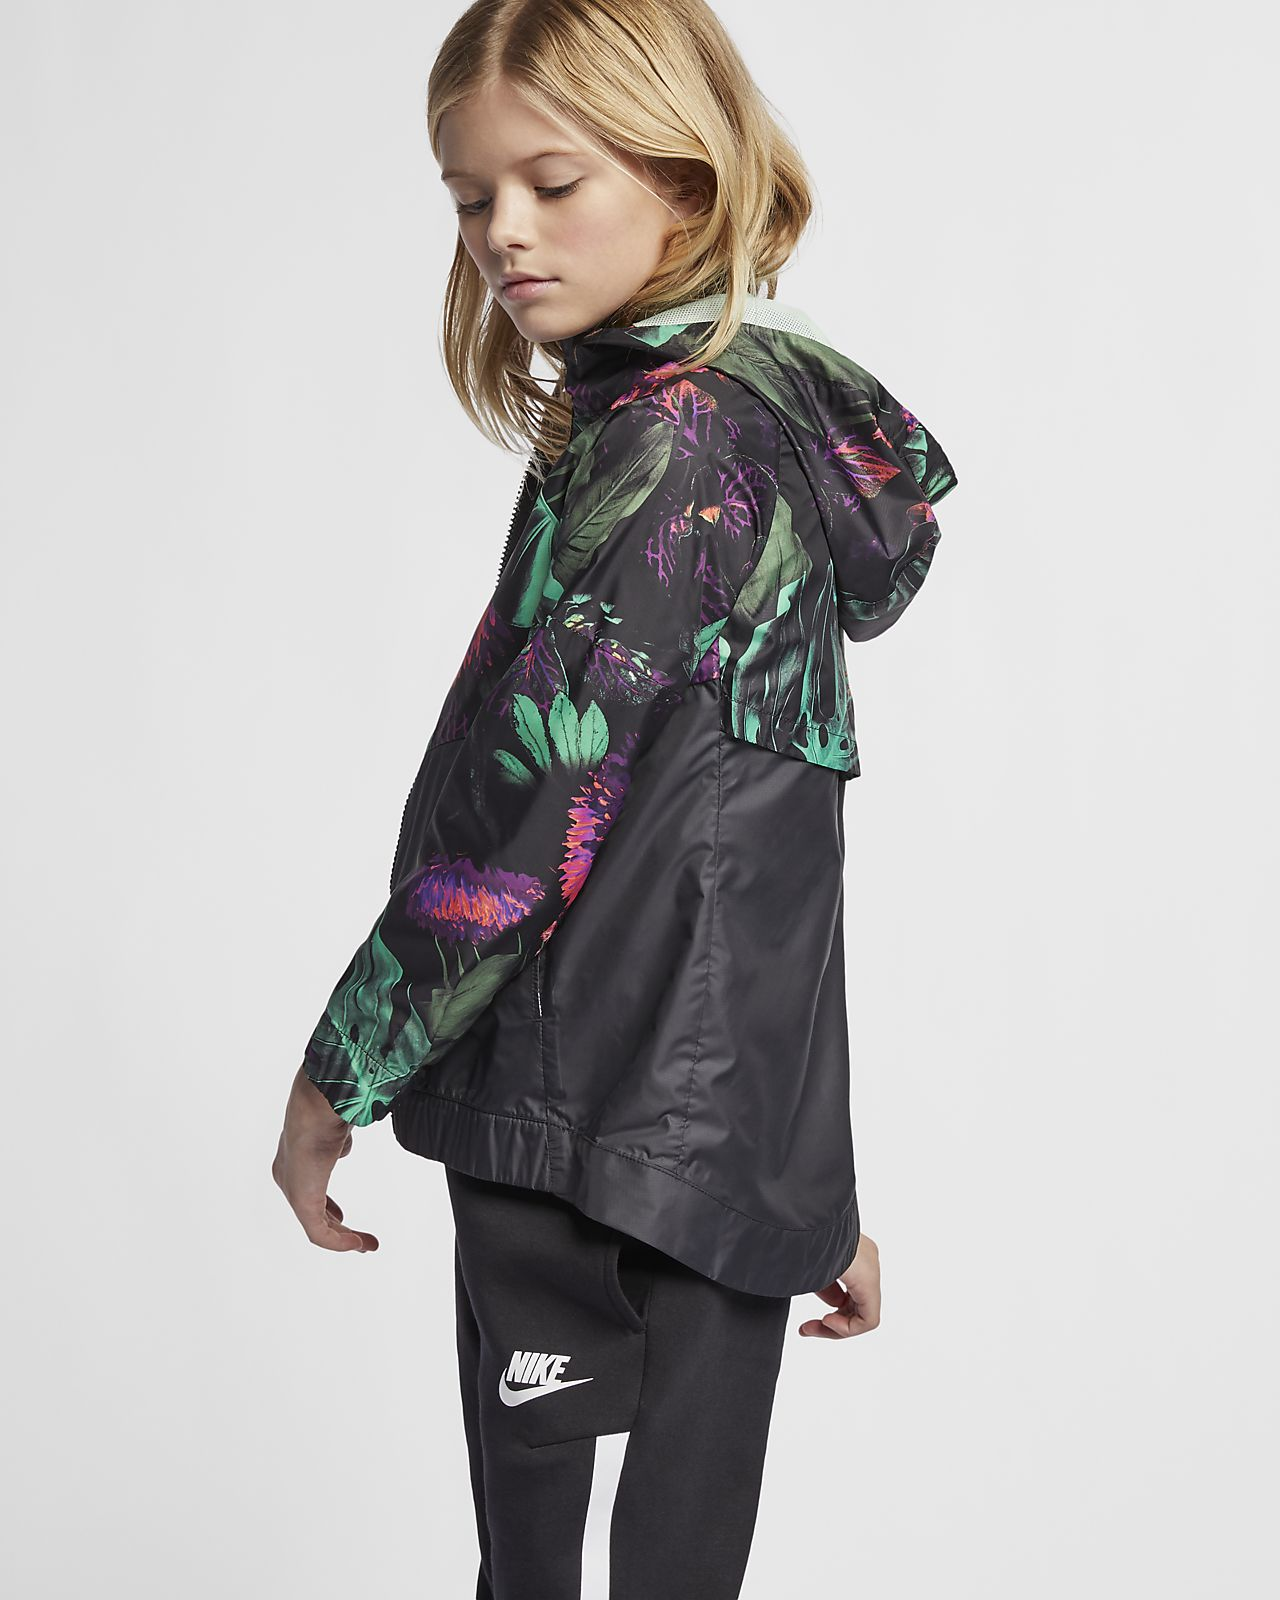 3f1b5585 Nike Sportswear Windrunner 'Floral' Older Kids' (Girls') Floral ...